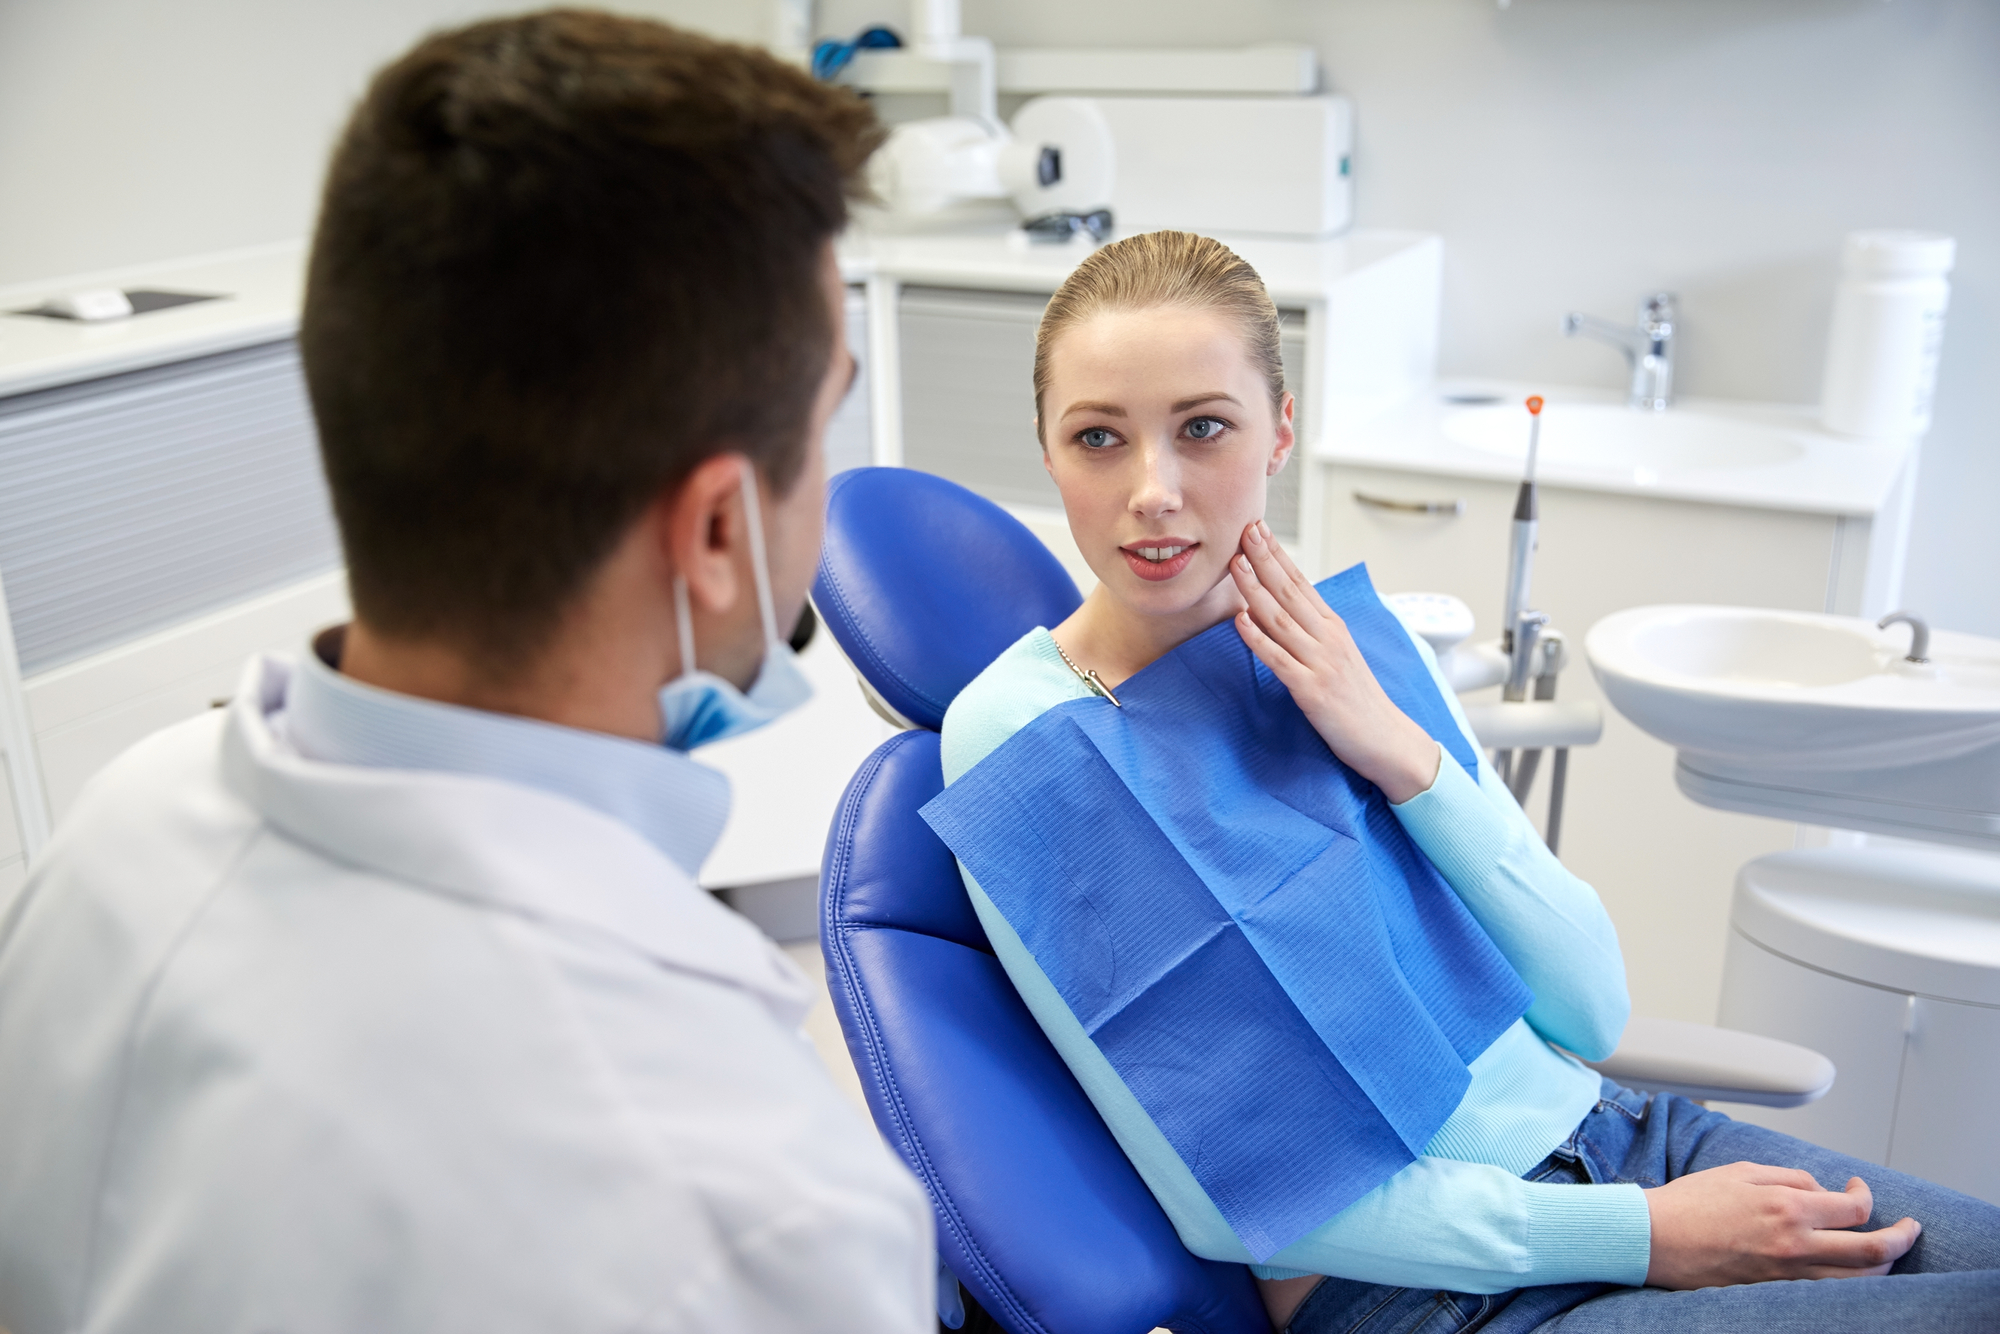 Laser Dentistry Palm Beach Gardens | Common Misconceptions About Laser Dentistry